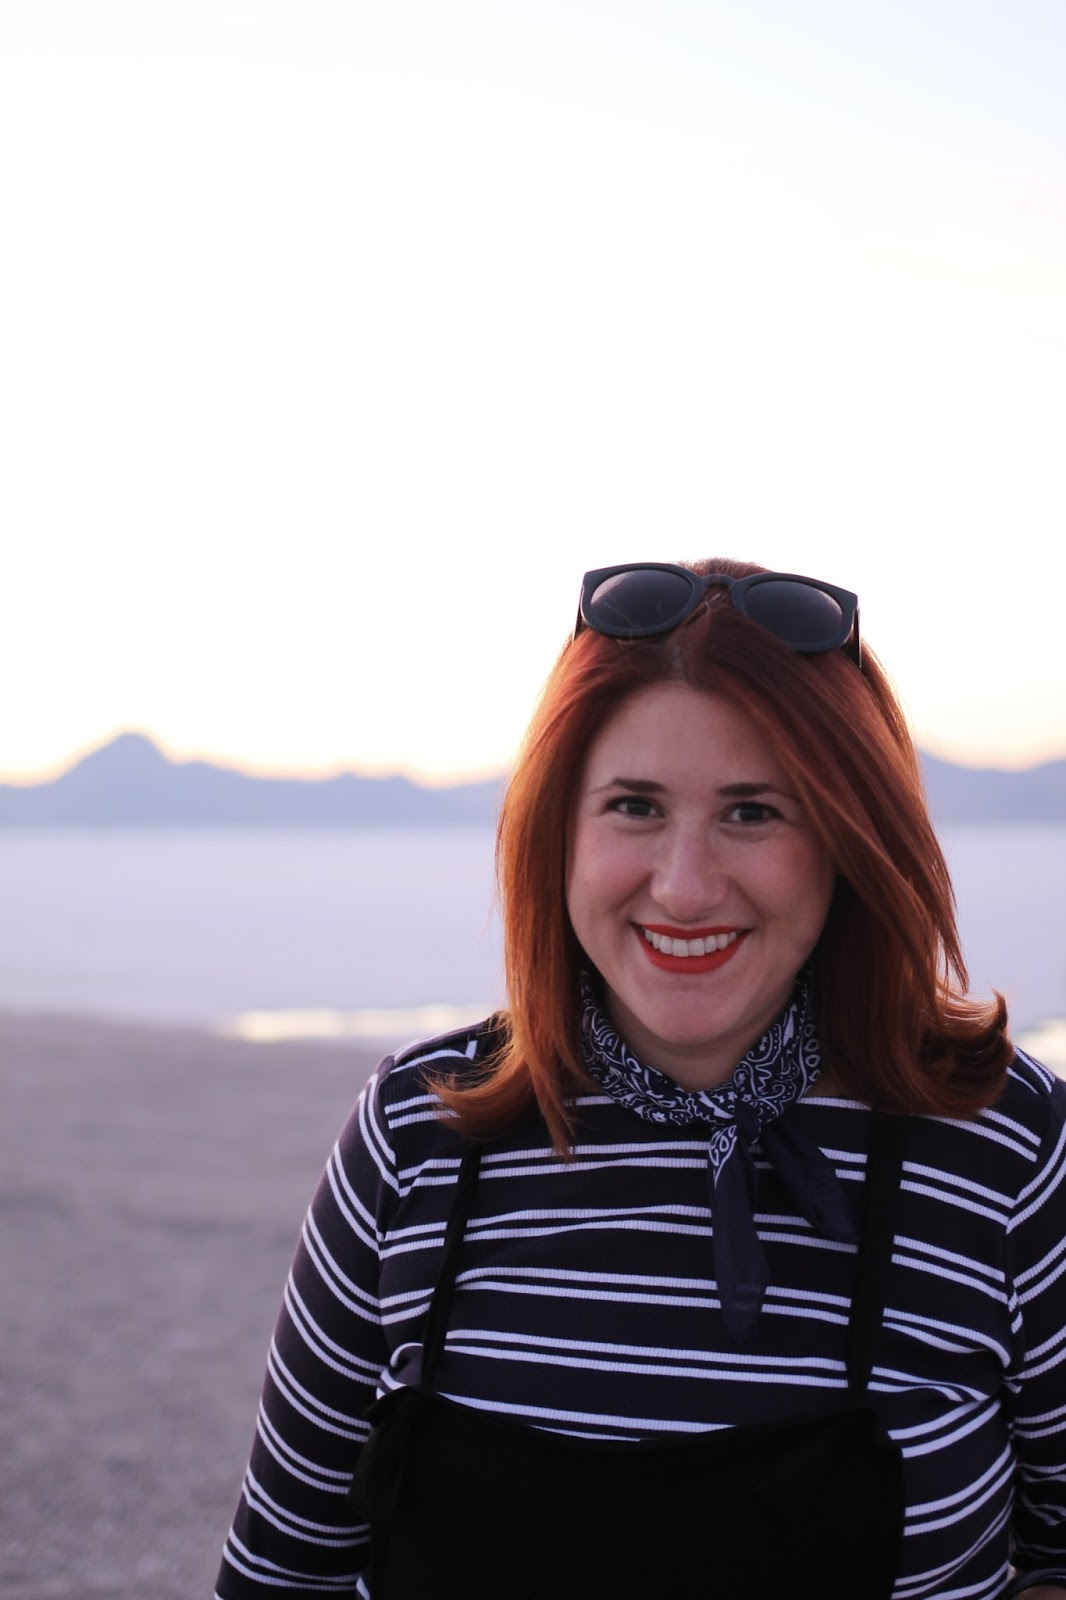 Bonneville salt Flats, Maternity style, overalls, red hair, sunset